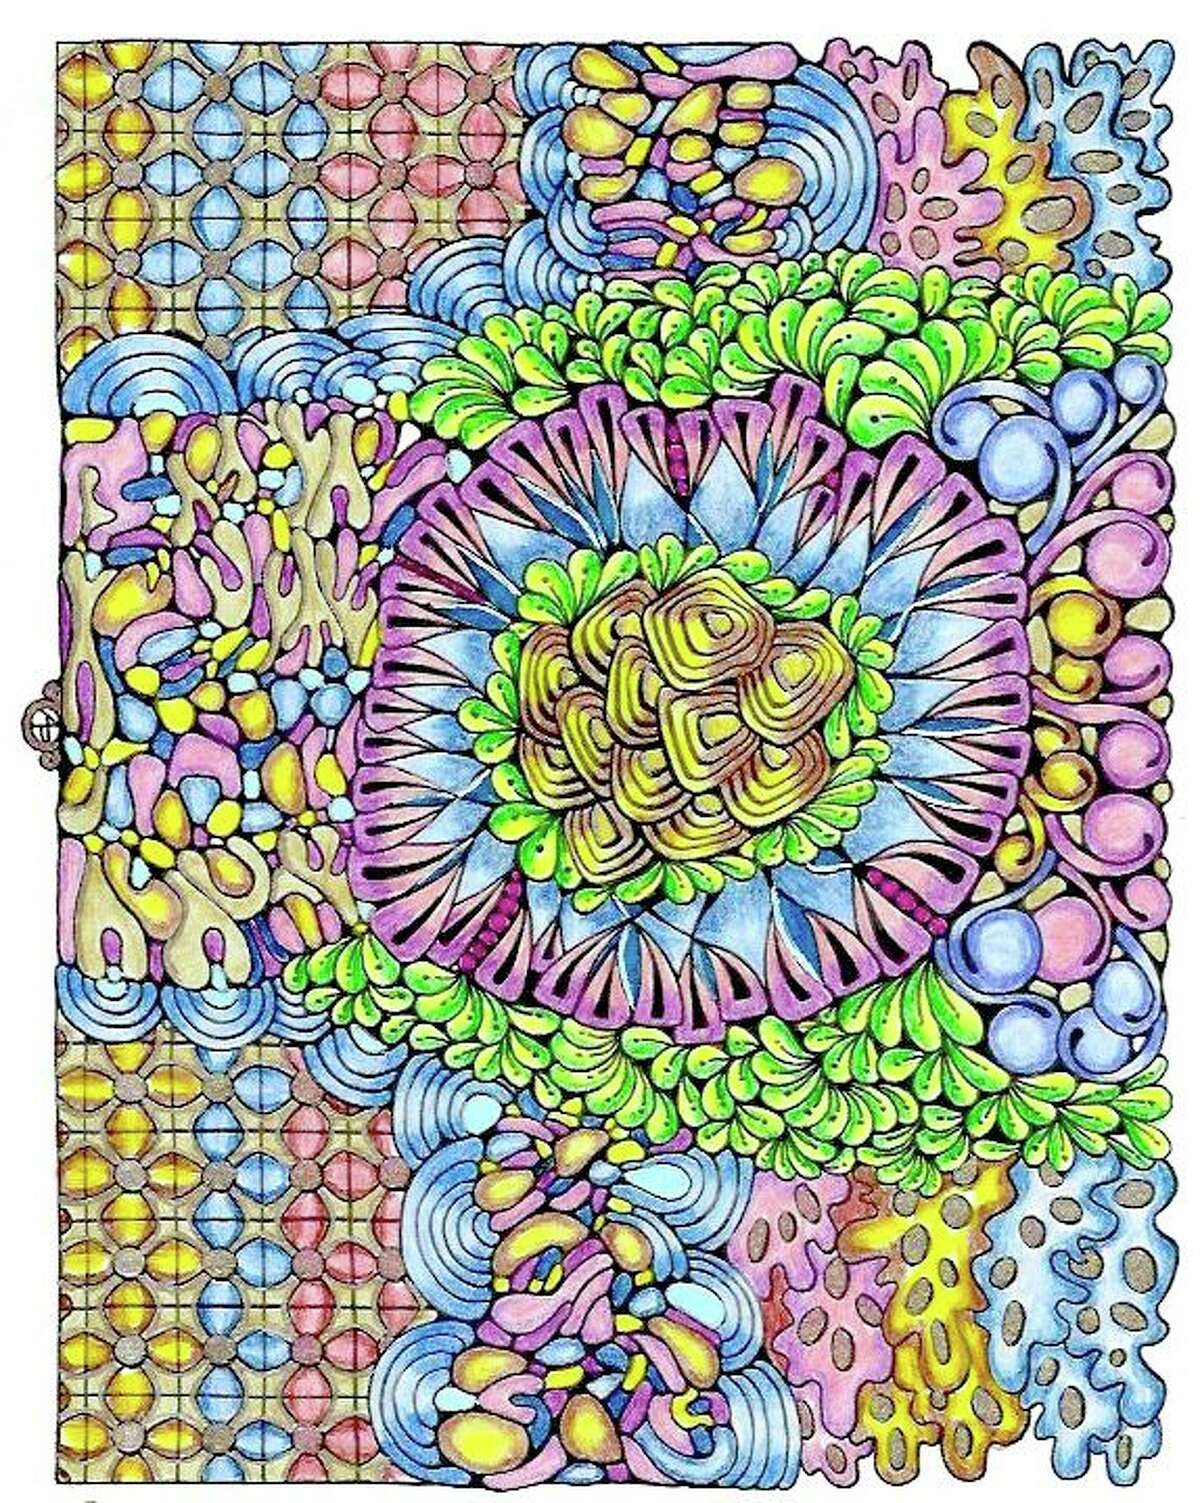 Color away your stress. Design by Angela Porter, colored by Sally Bahner